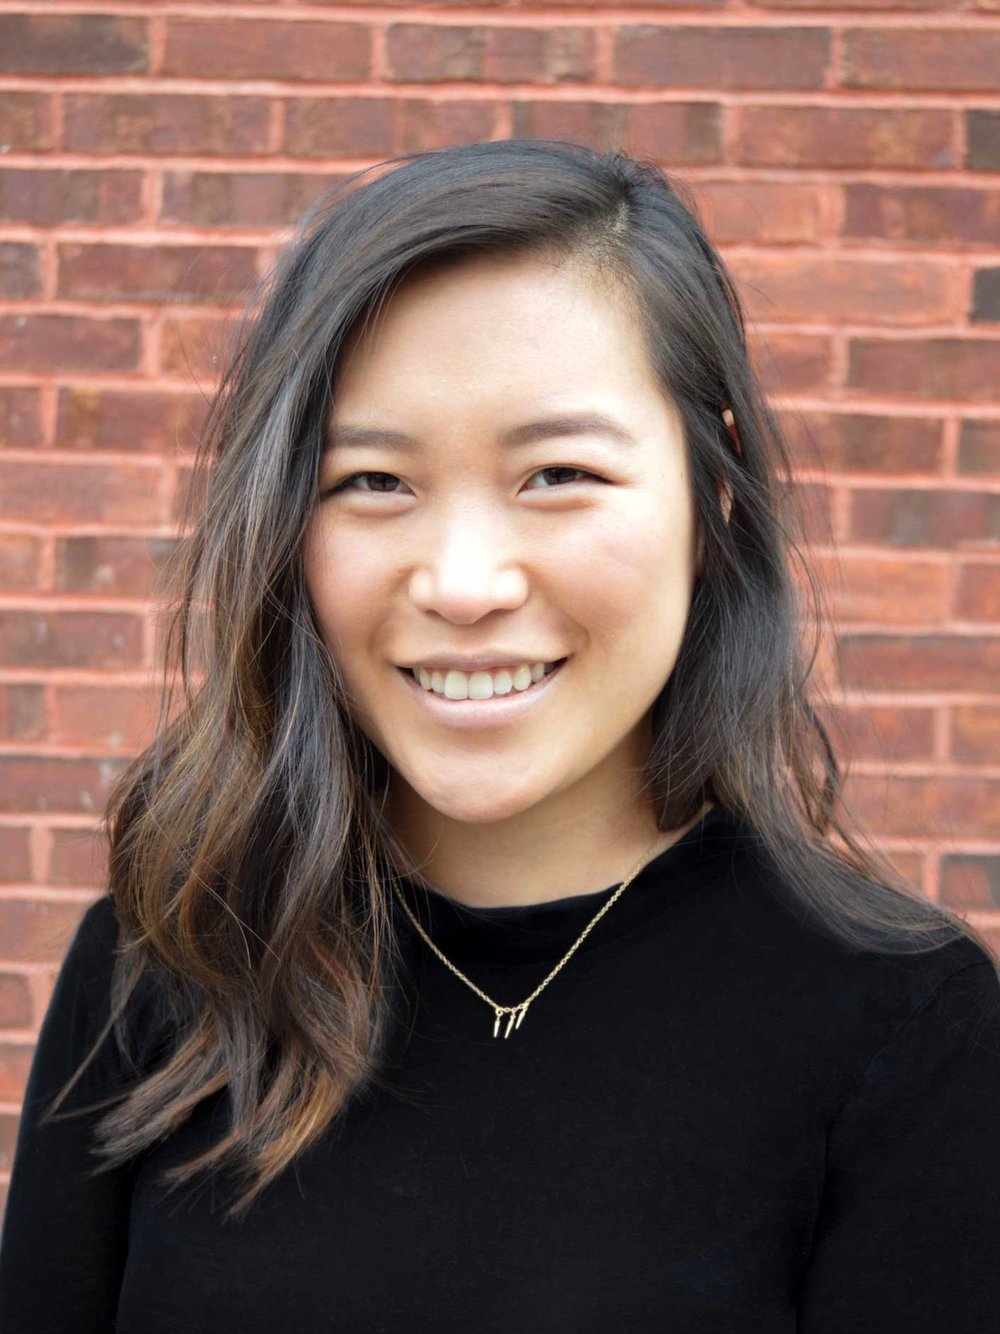 Manhattan Psychotherapist Christie Kim in front of a brick wall, smiling, with a black sweater on. She is wearing a necklace.